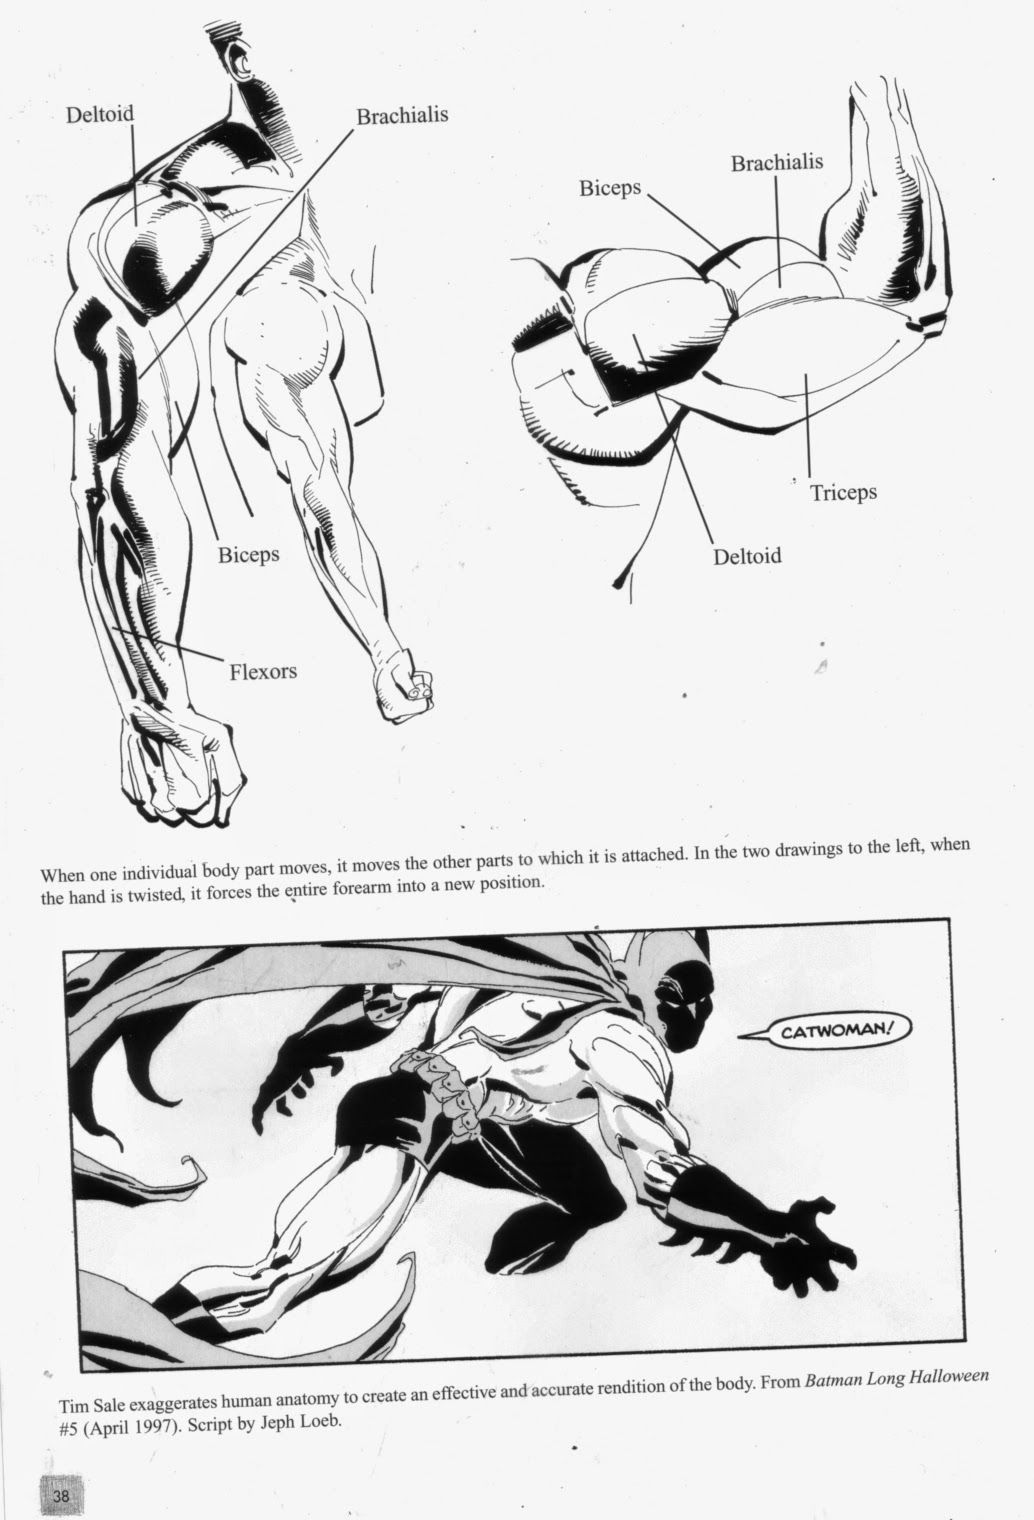 mold breaker scans from klaus janson dc comics guide to pencilling rh pinterest ch the dc comics guide to pencilling comics by klaus janson dc comics guide to pencilling